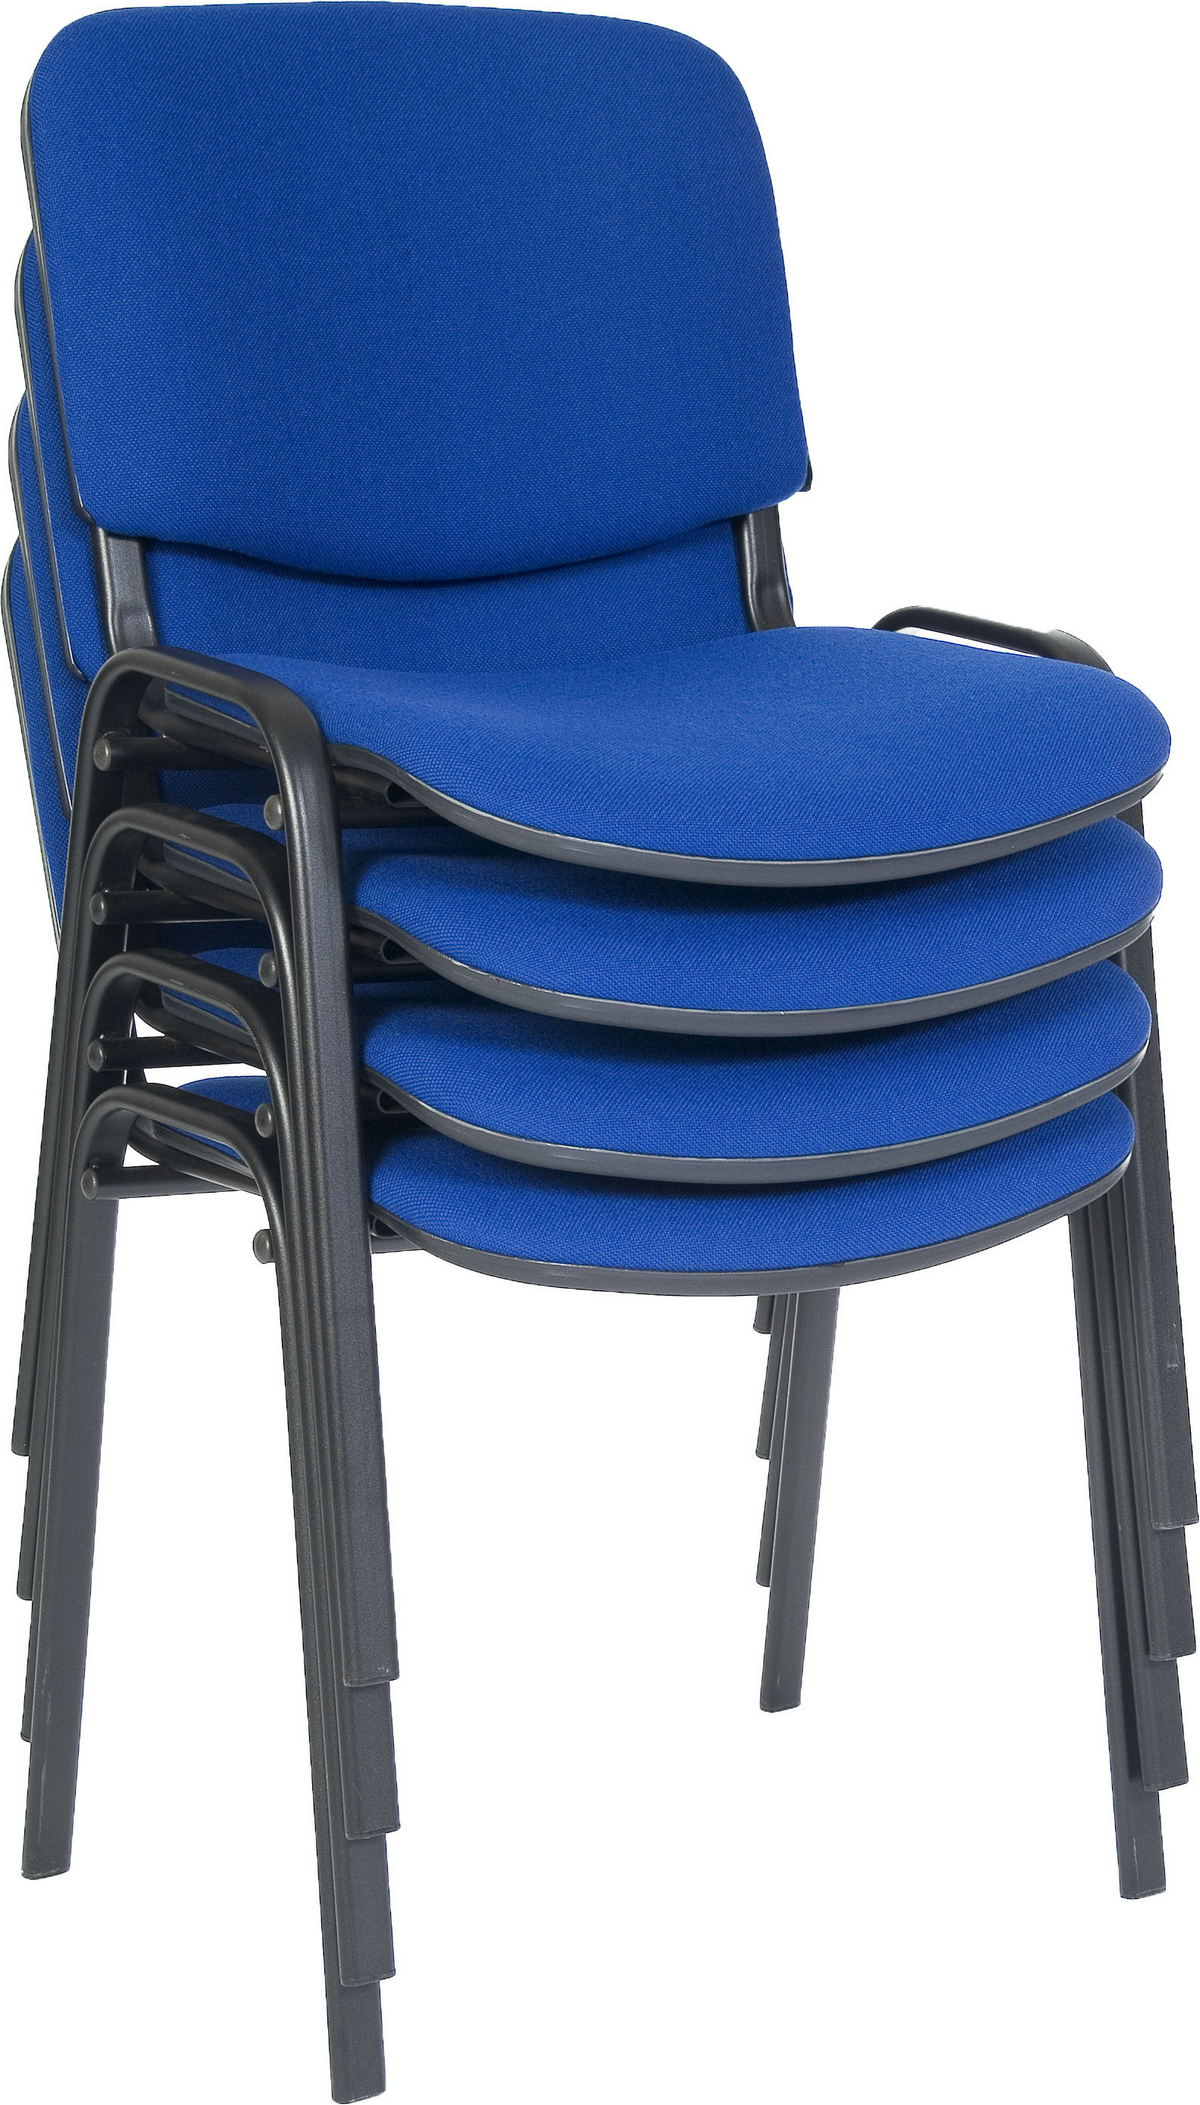 Conference Community Chair